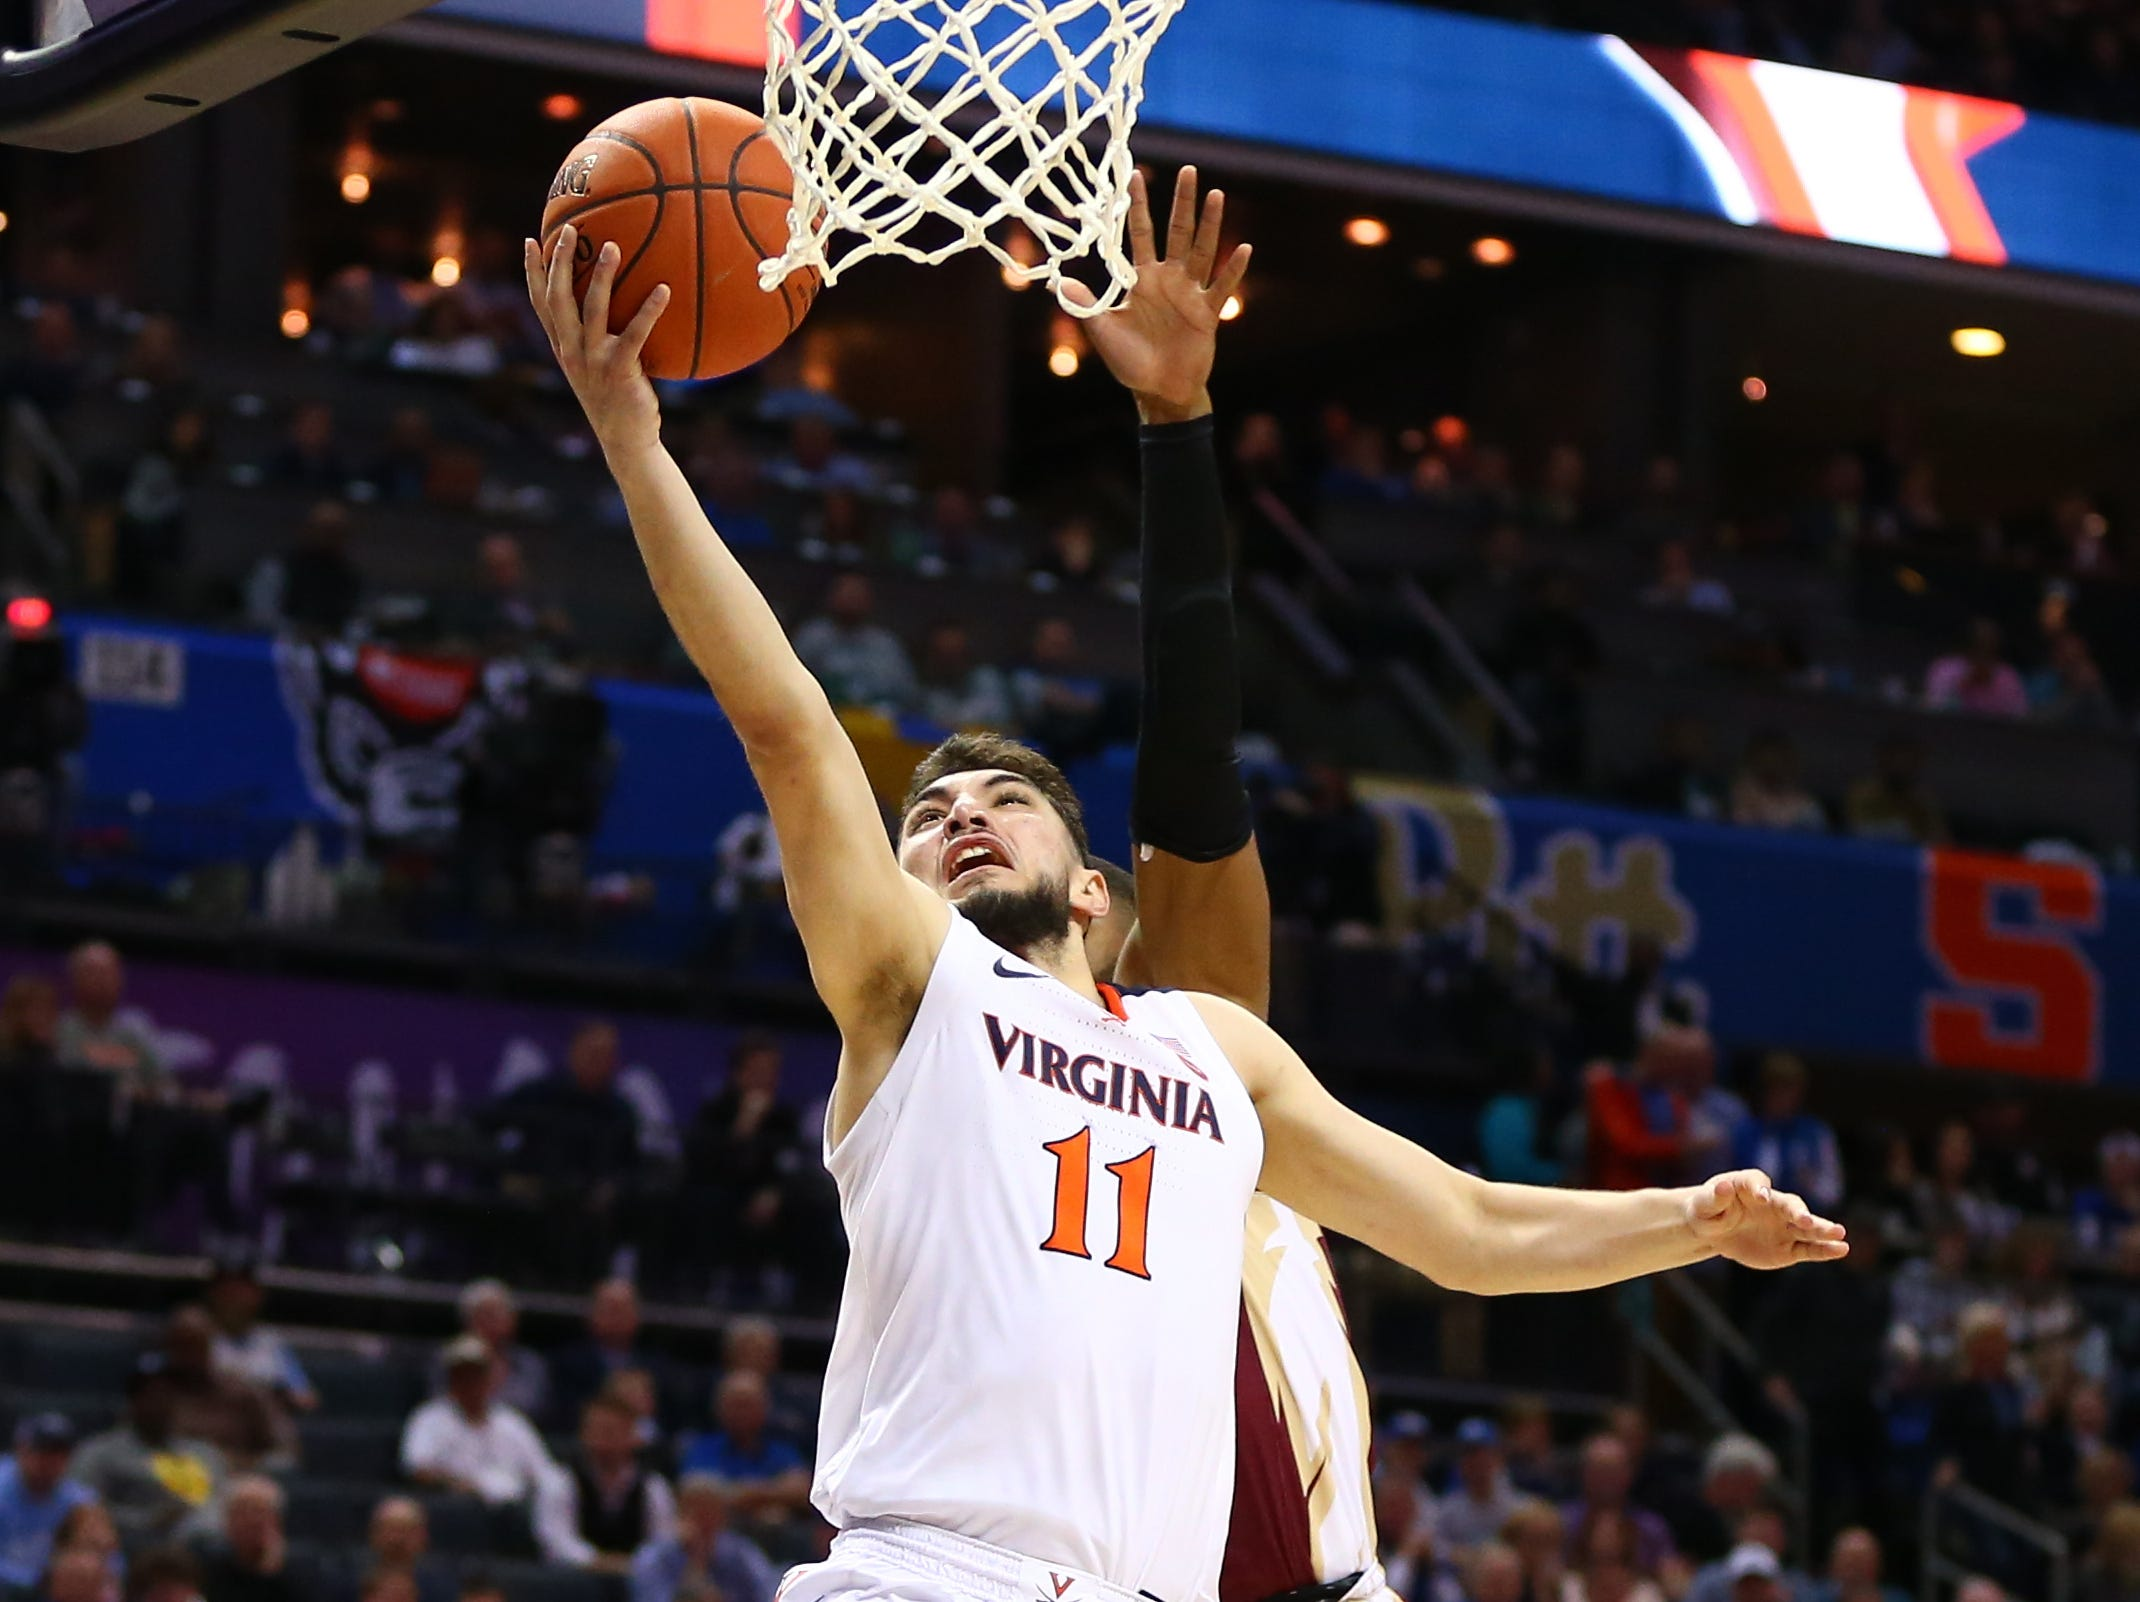 Mar 15, 2019; Charlotte, NC, USA; Virginia Cavaliers guard Ty Jerome (11) shoots against Florida State Seminoles guard M.J. Walker (23) in the second half in the ACC conference tournament at Spectrum Center. Mandatory Credit: Jeremy Brevard-USA TODAY Sports